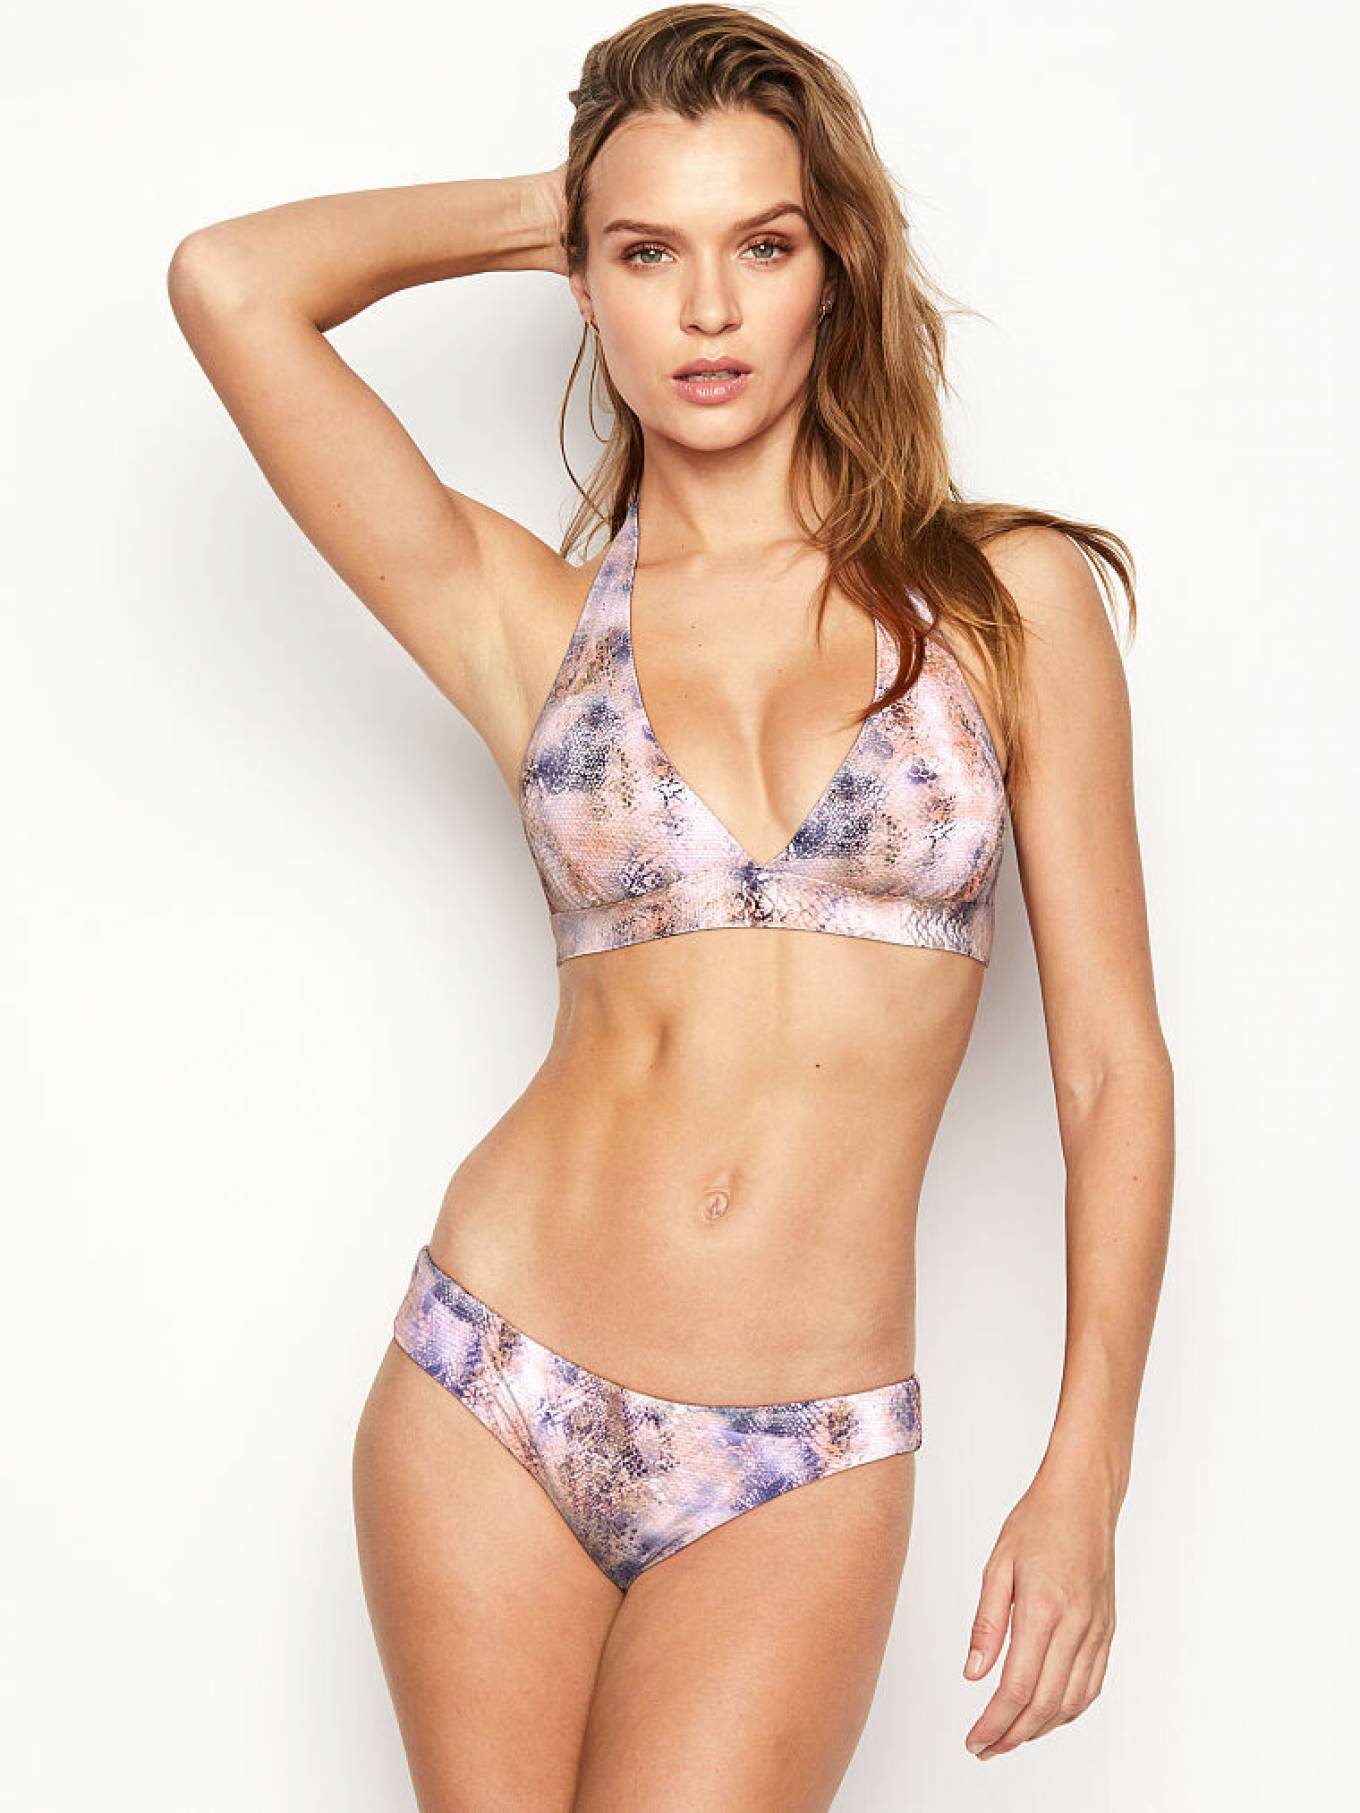 Josephine Skriver - Victoria's Secret collection August 2020